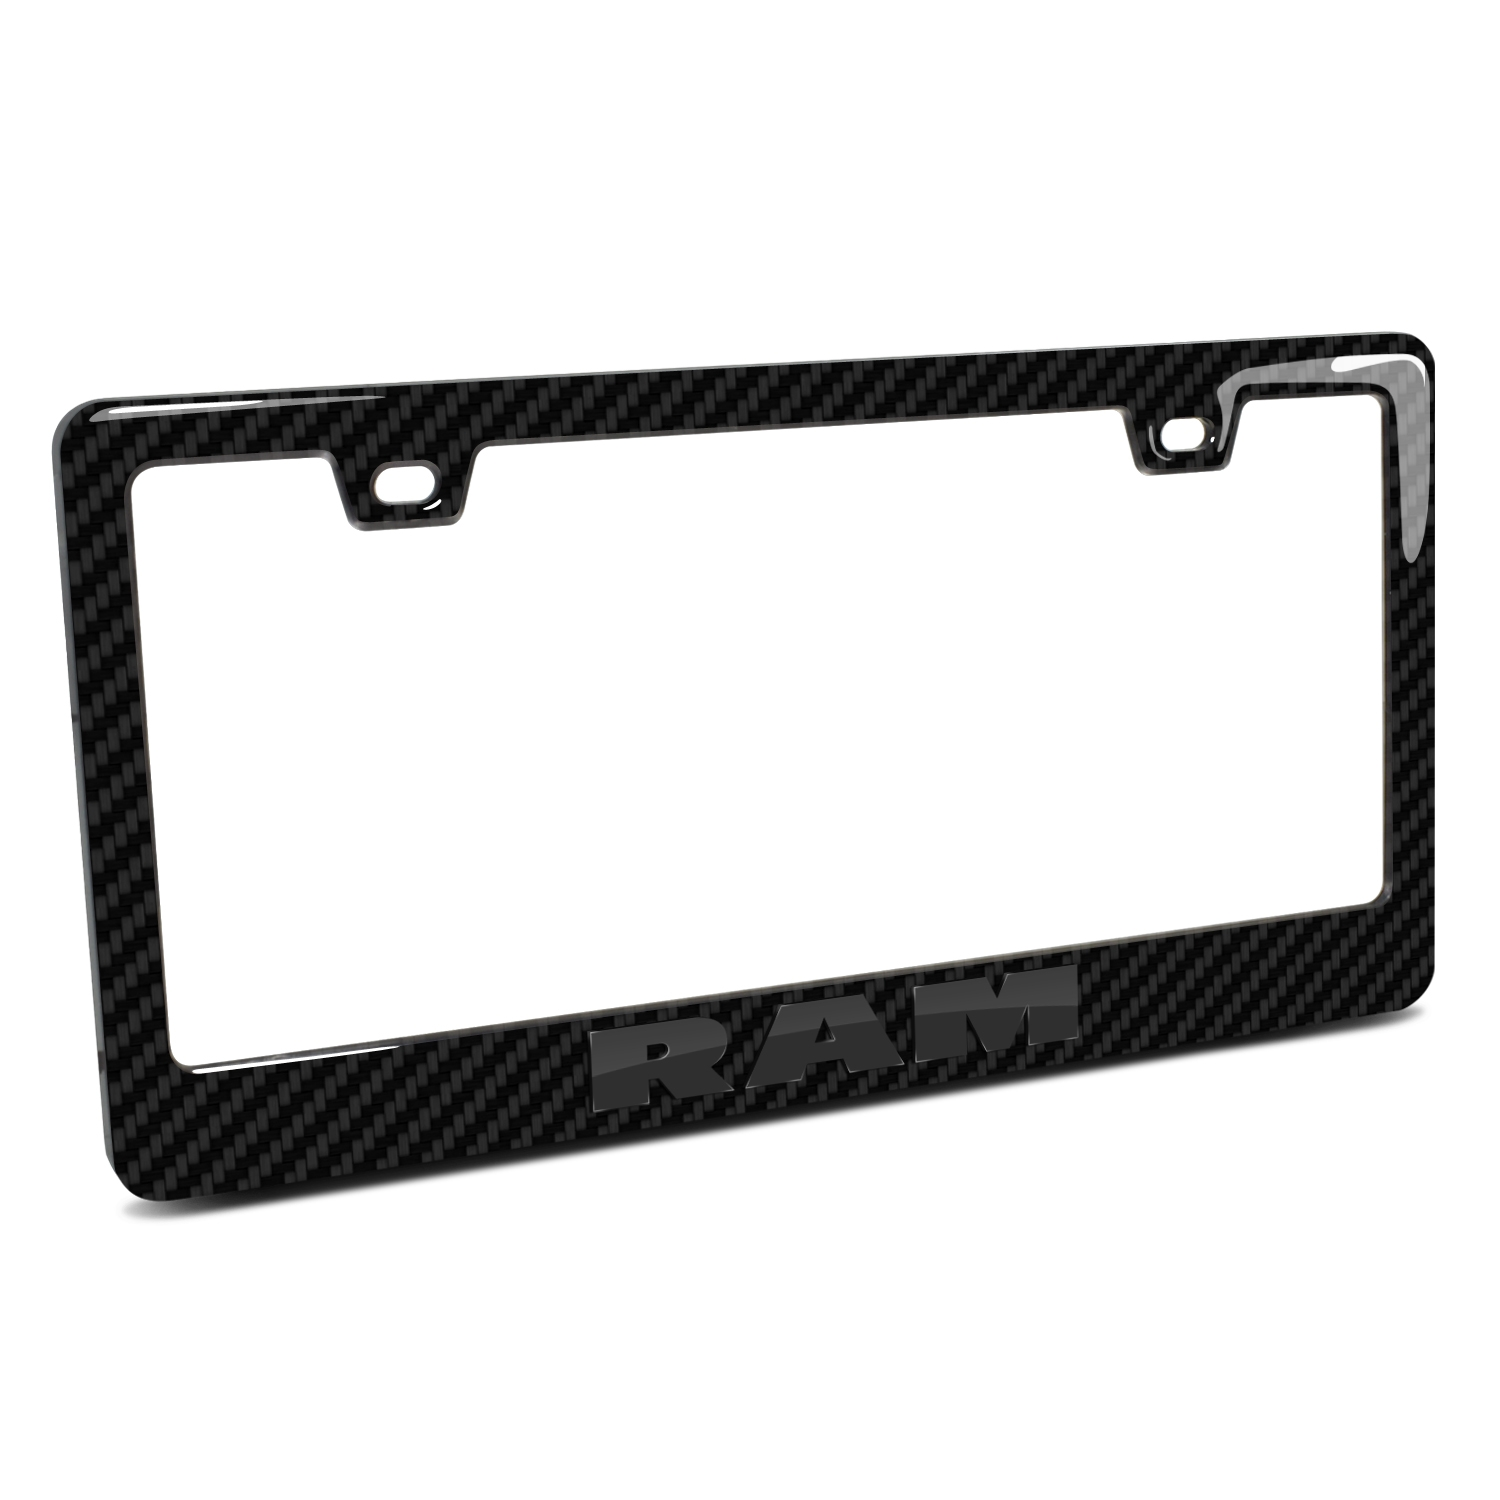 RAM in 3D Black on Black Real 3K Carbon Fiber Finish ABS Plastic License Plate Frame